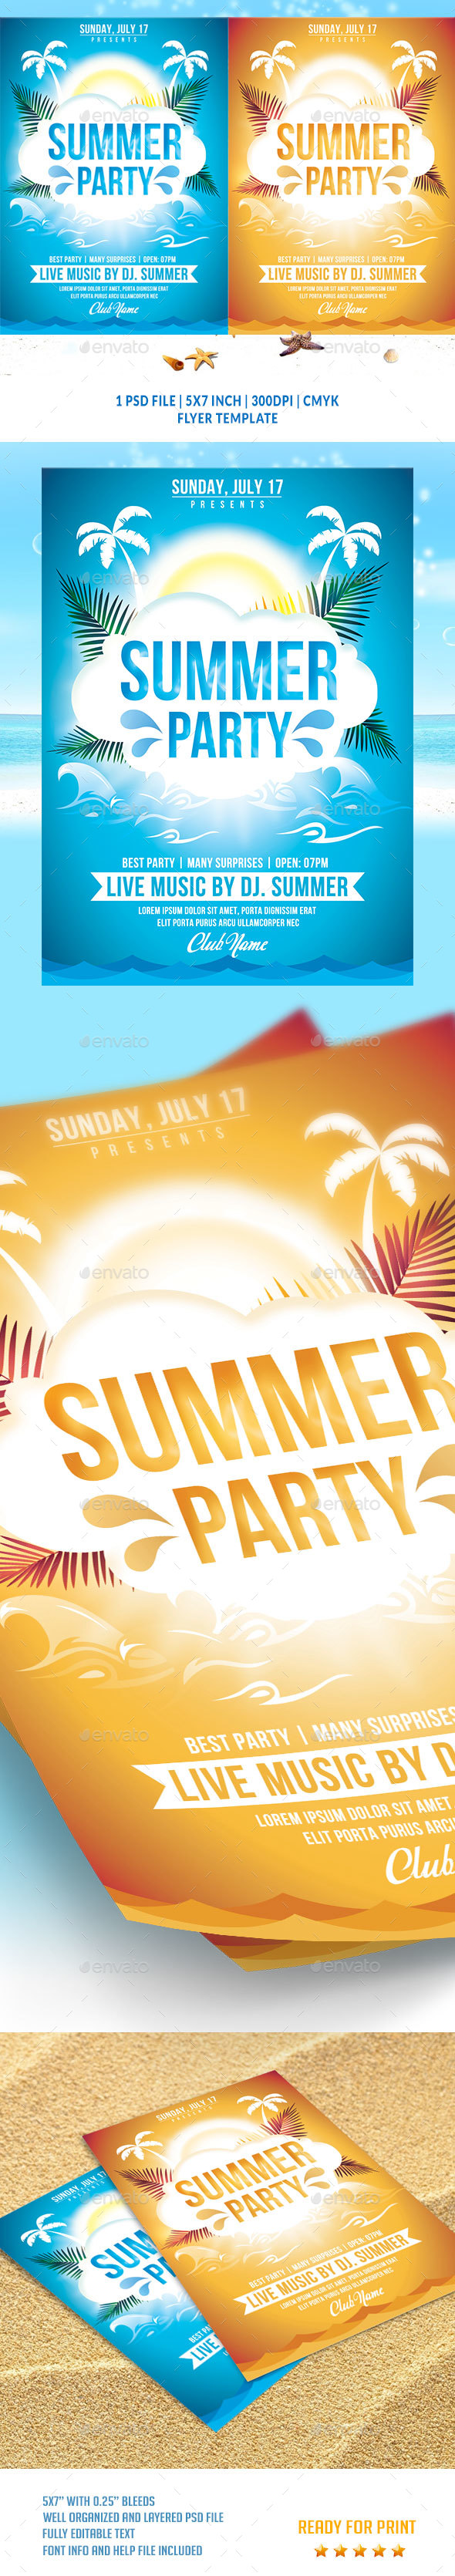 Summer Party Flyer Template v2 - Flyers Print Templates